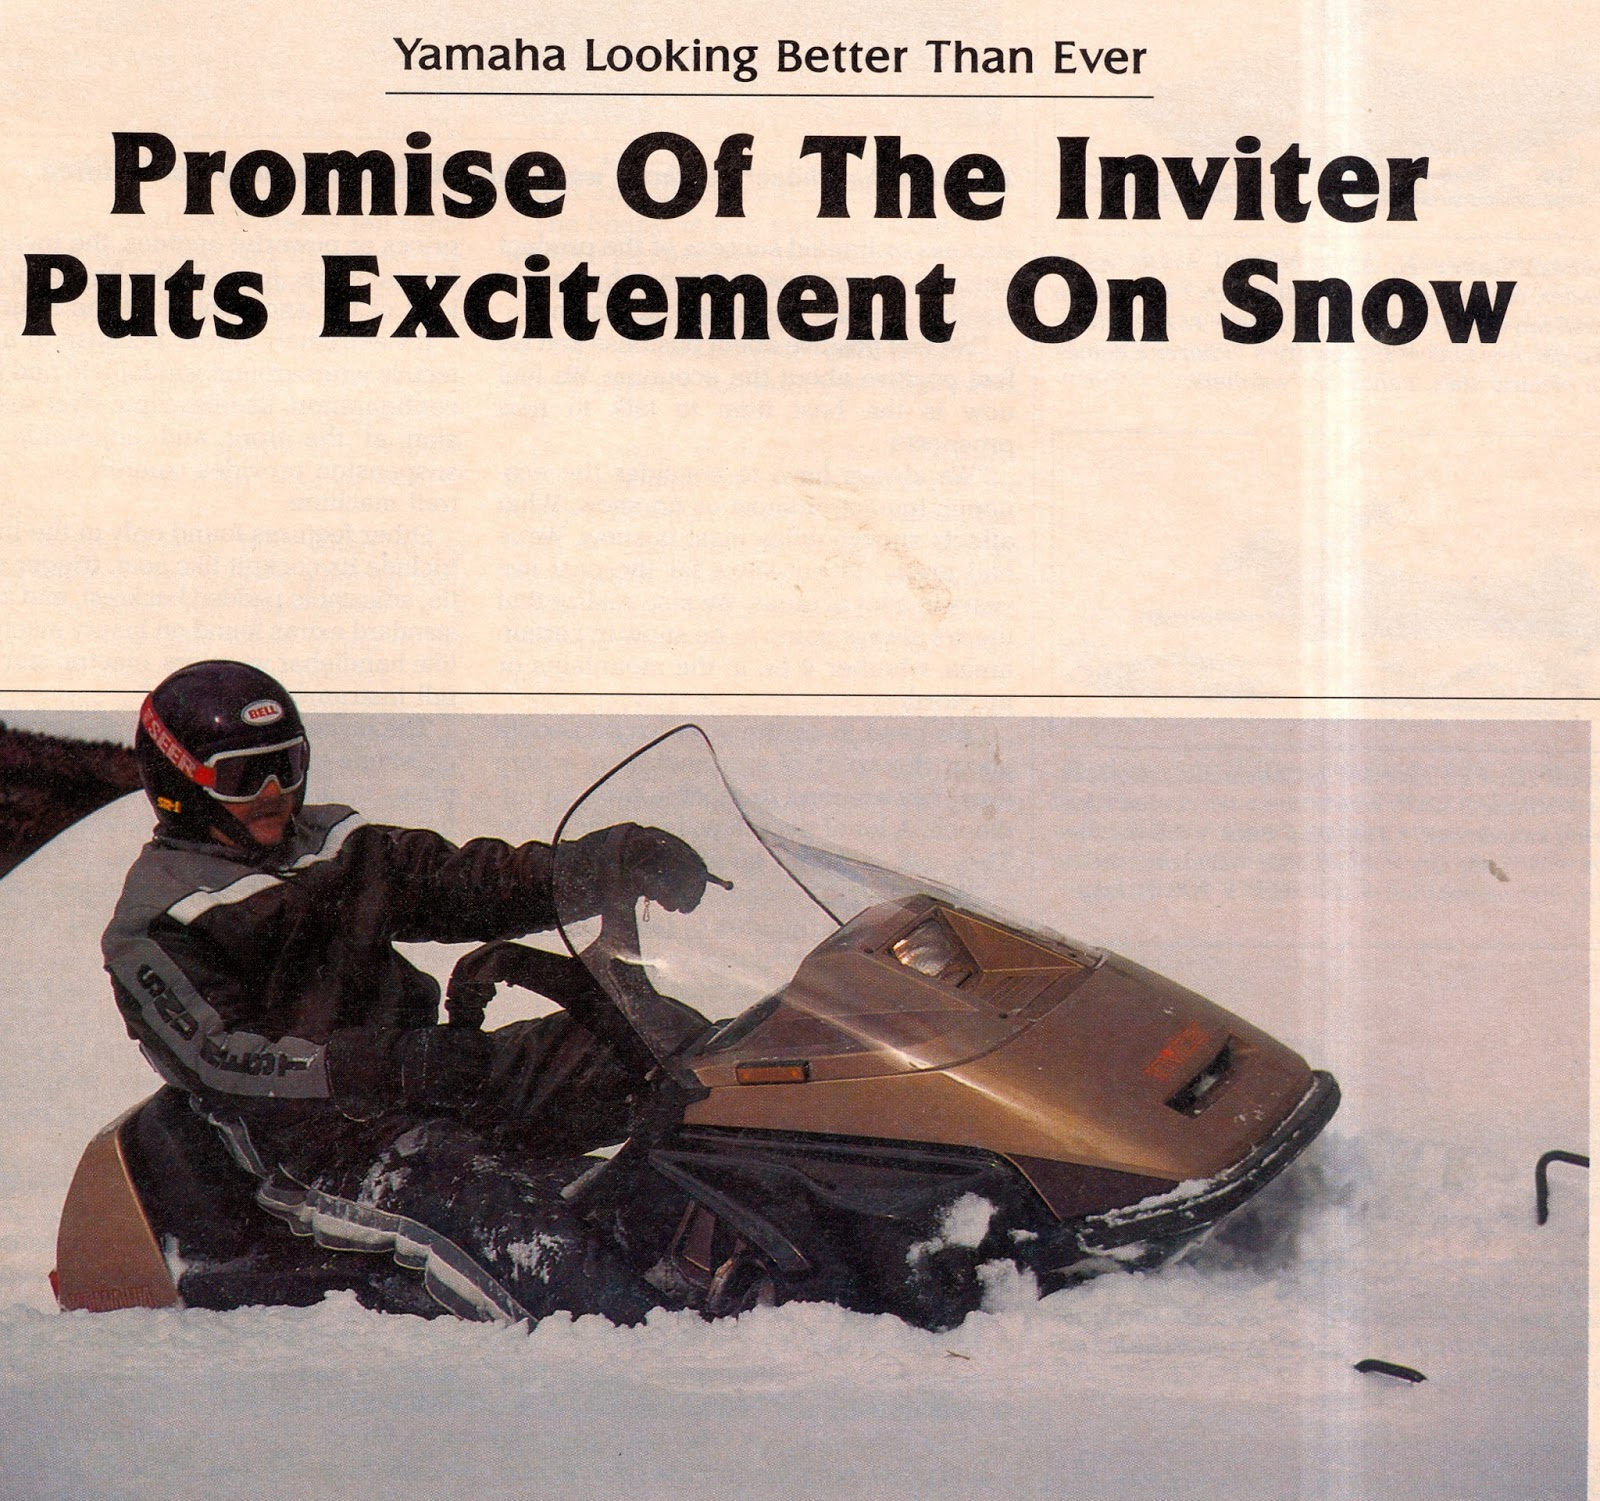 Classic Snowmobiles Of The Past 1986 Yamaha Inviter Snowmobile